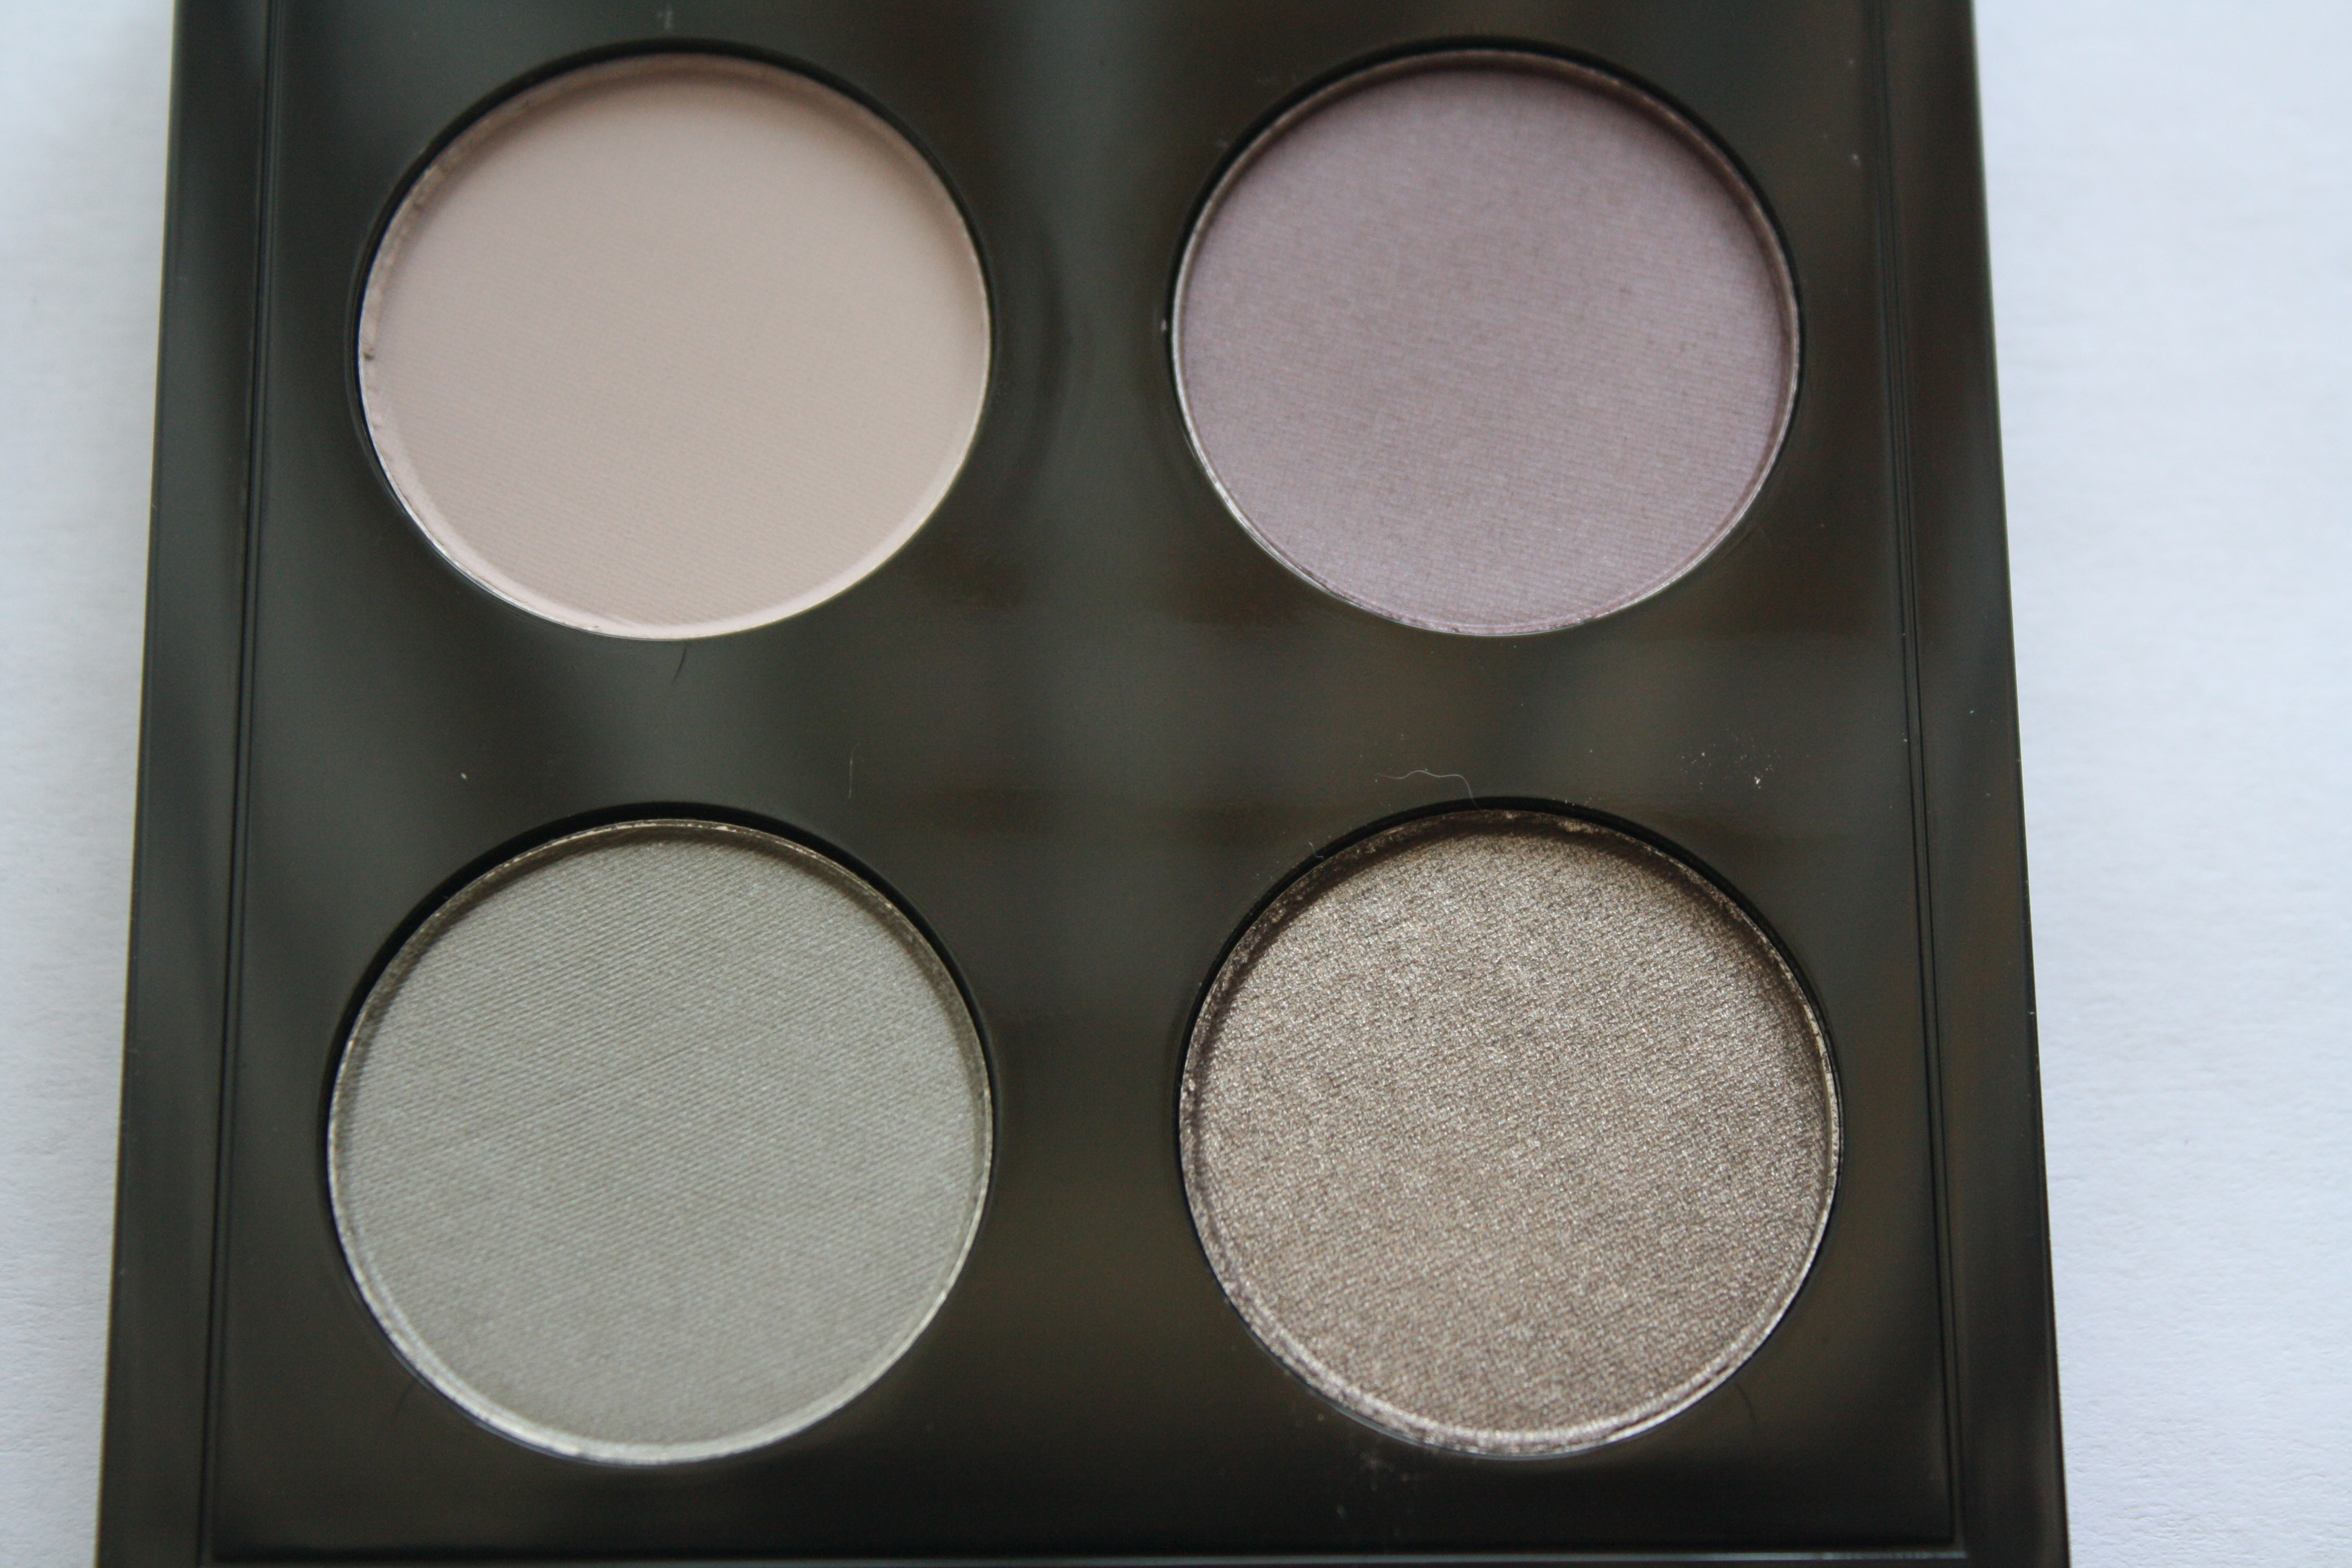 Mac Me Over Lady Grey Eyeshadow Quad Review Swatches